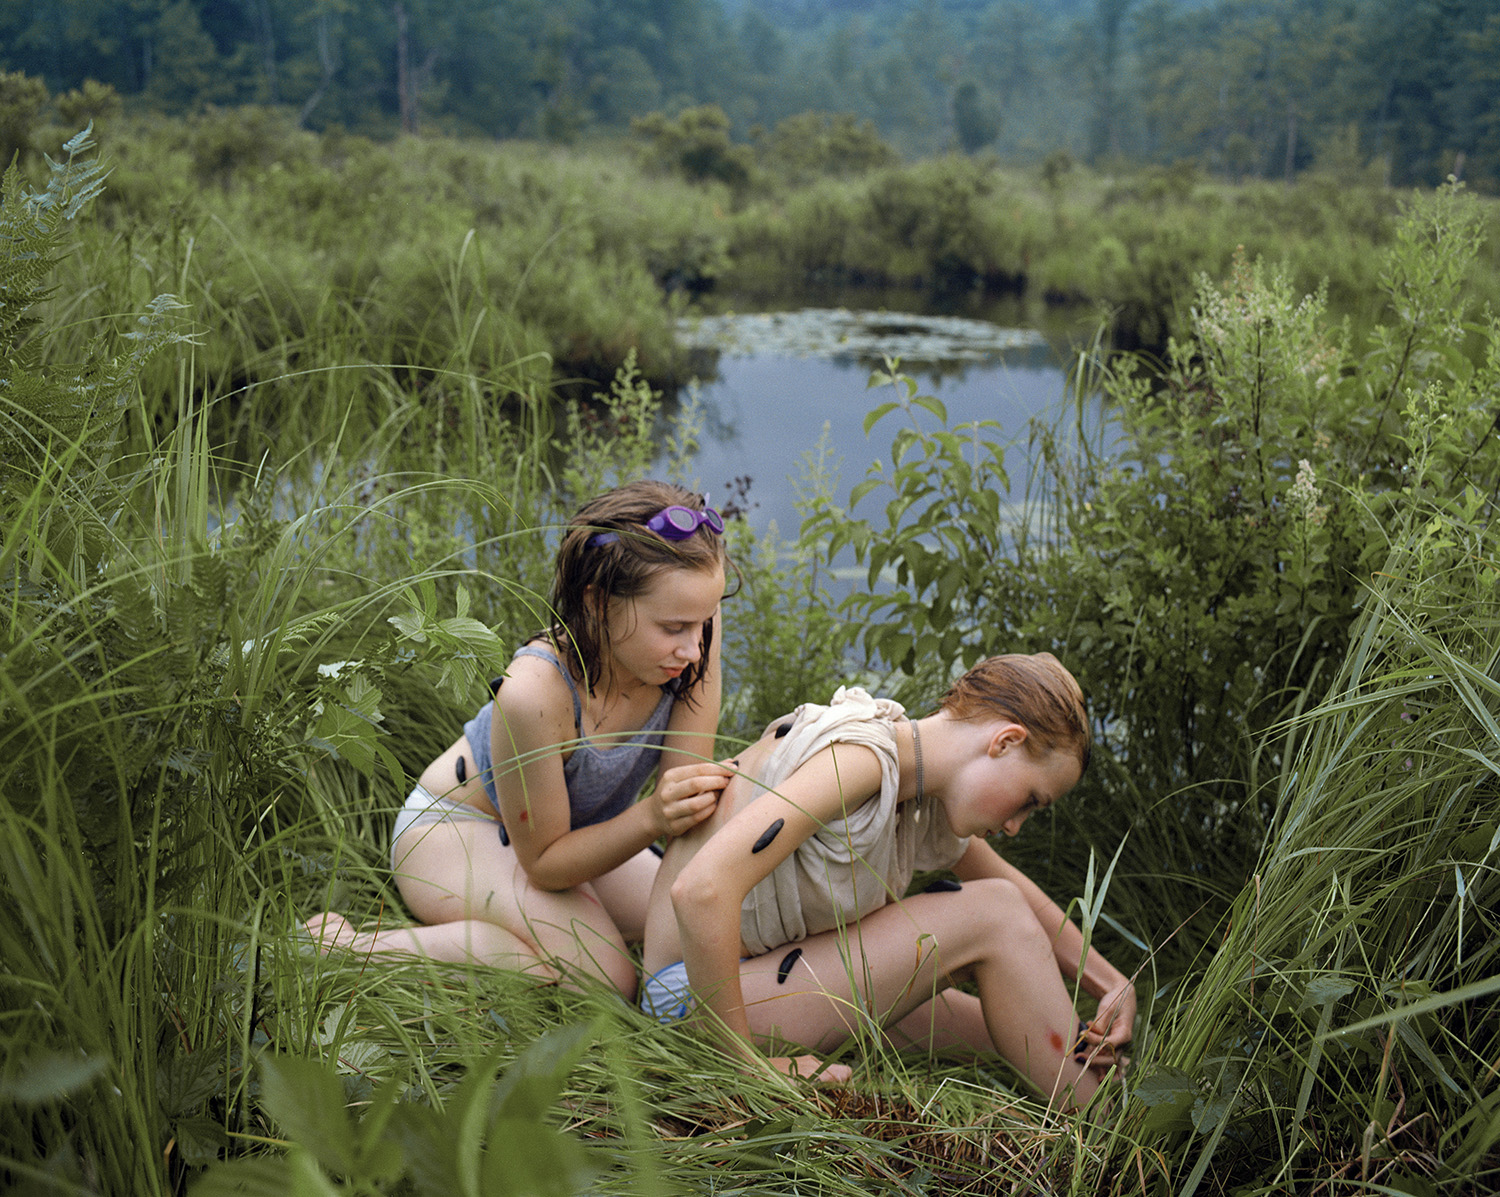 Justine Kurland on Girl Pictures